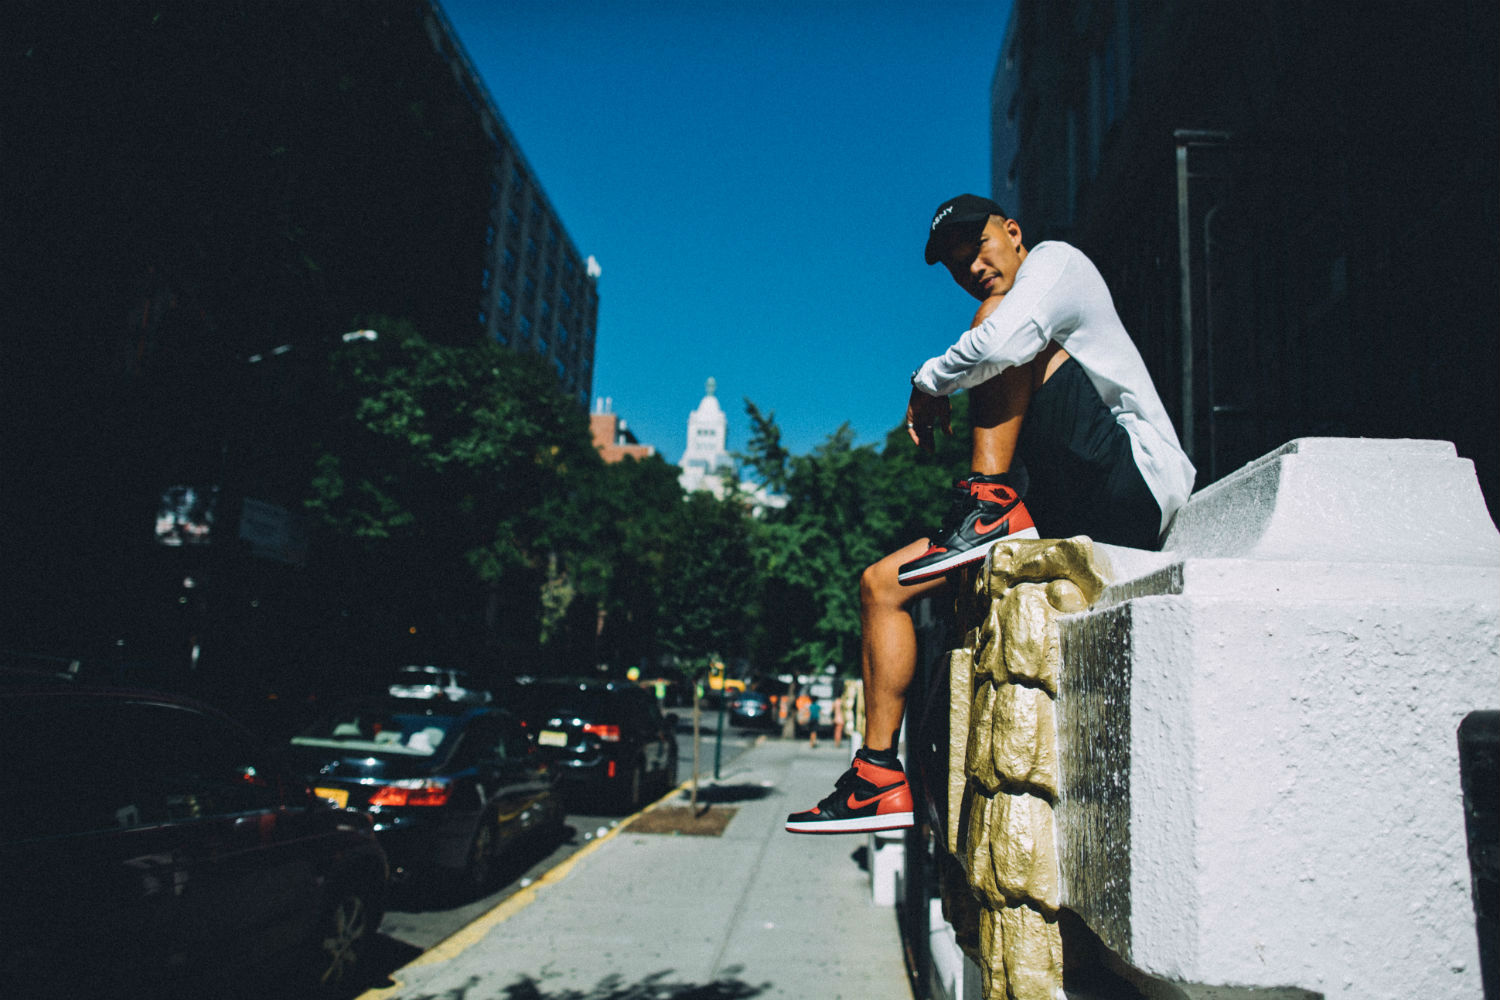 Exclusive Air Jordan XXXI Lookbook Featuring 13thWitness, Ronnie Fieg, Dao-Yi Chow, Don C & More